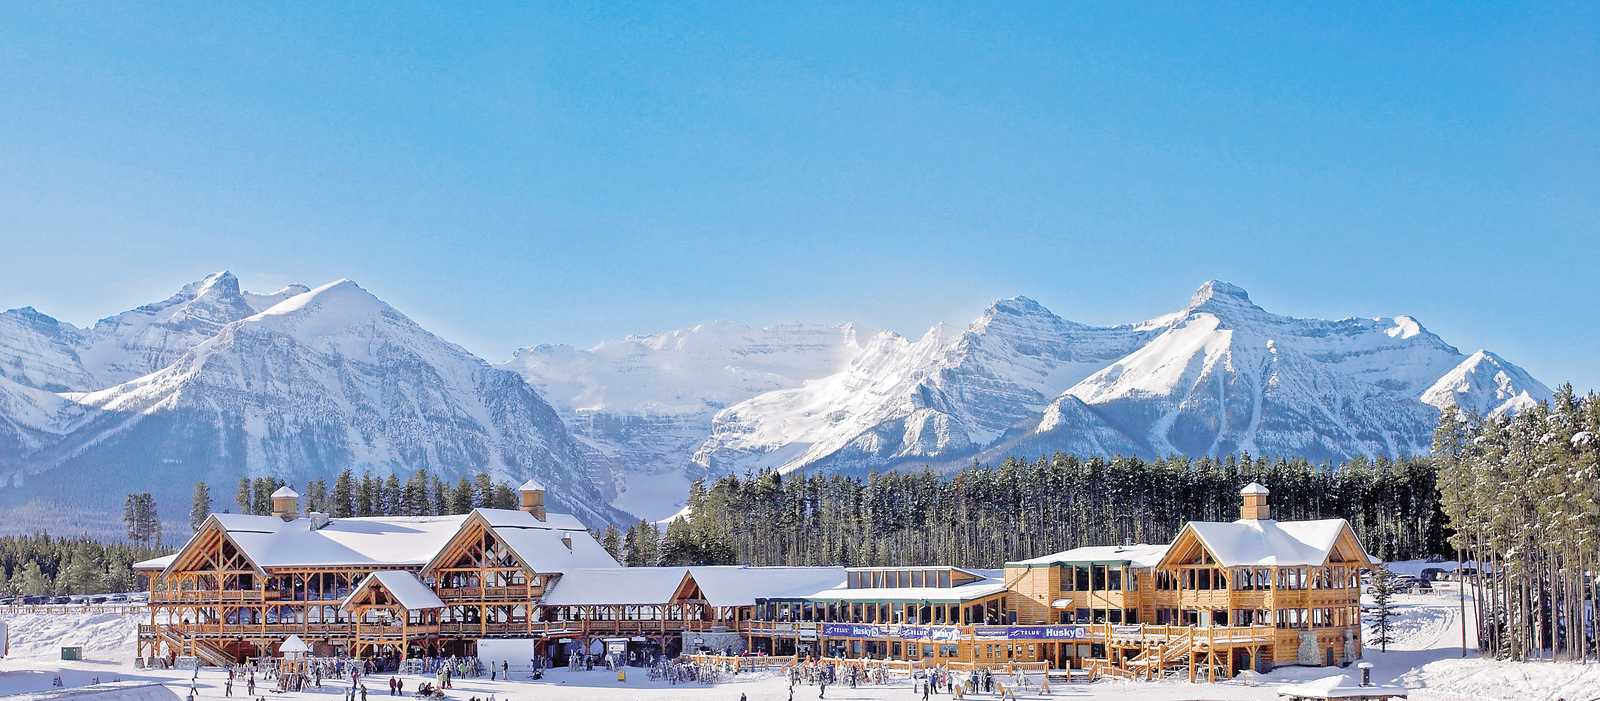 Lake Louise Ski Area Day Lodge